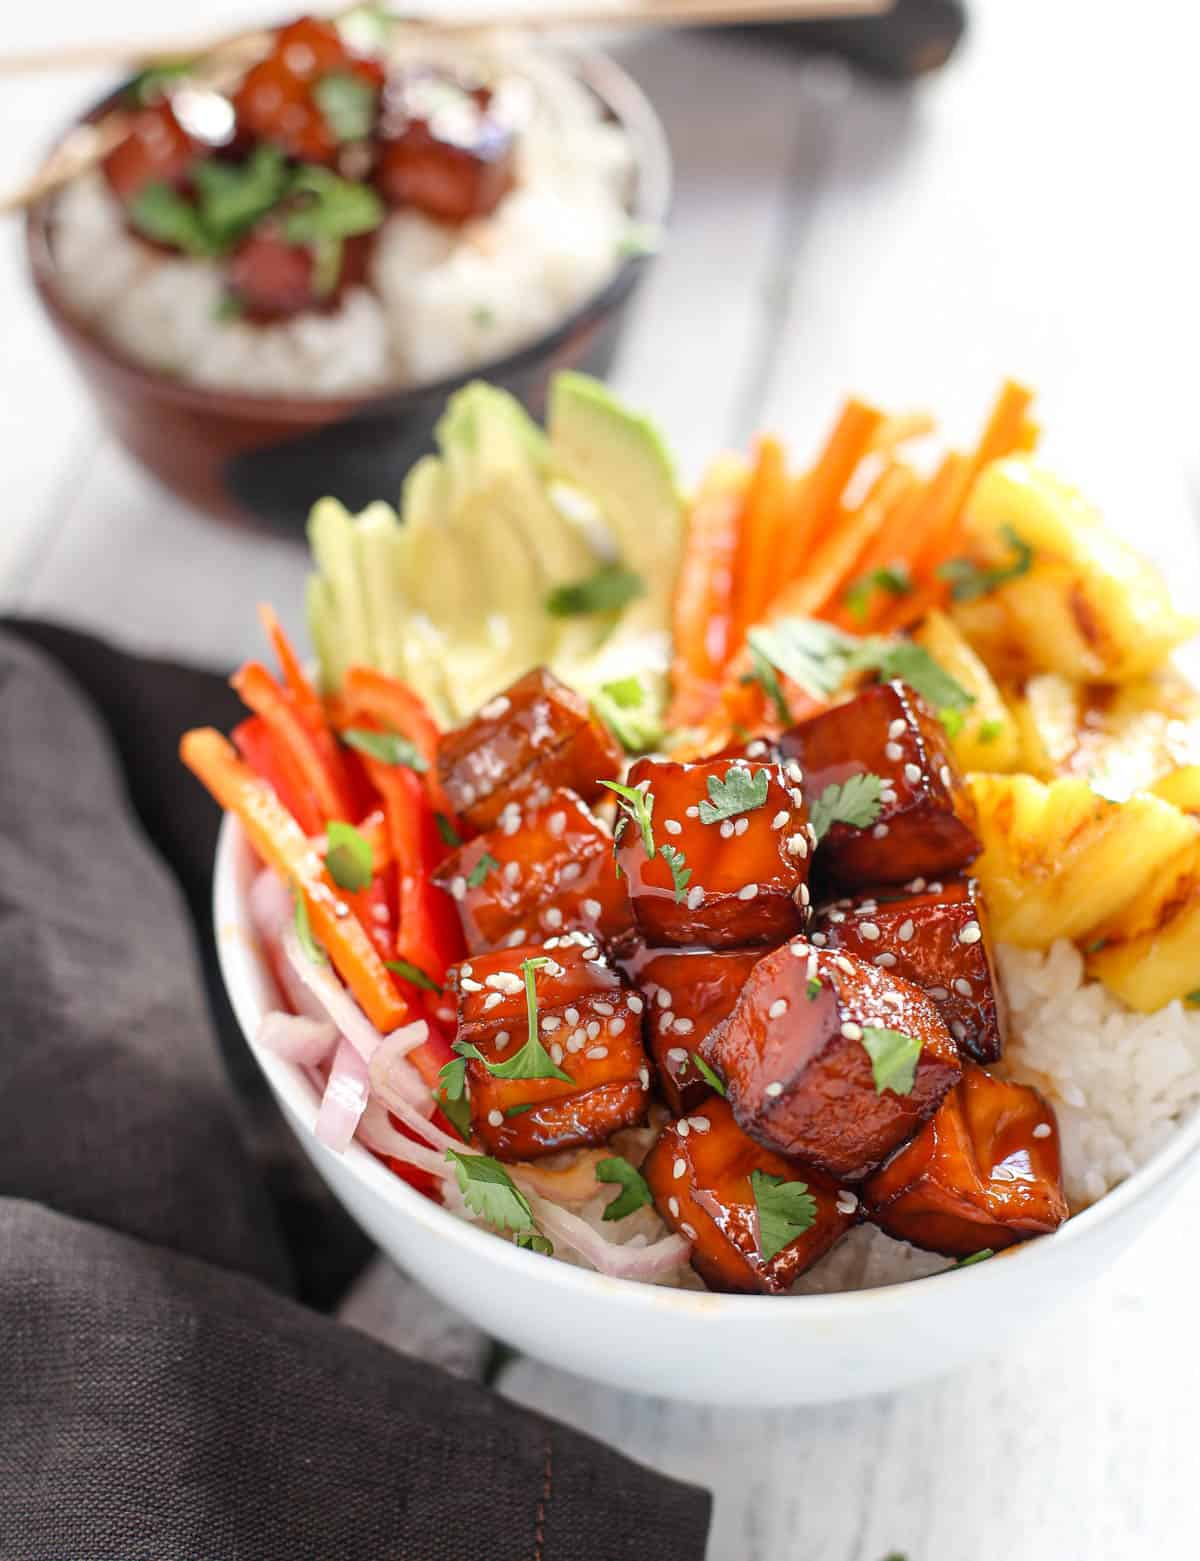 Smoked BBQ Tofu Bowls with vegetables and grilled pineapple in a white bowl